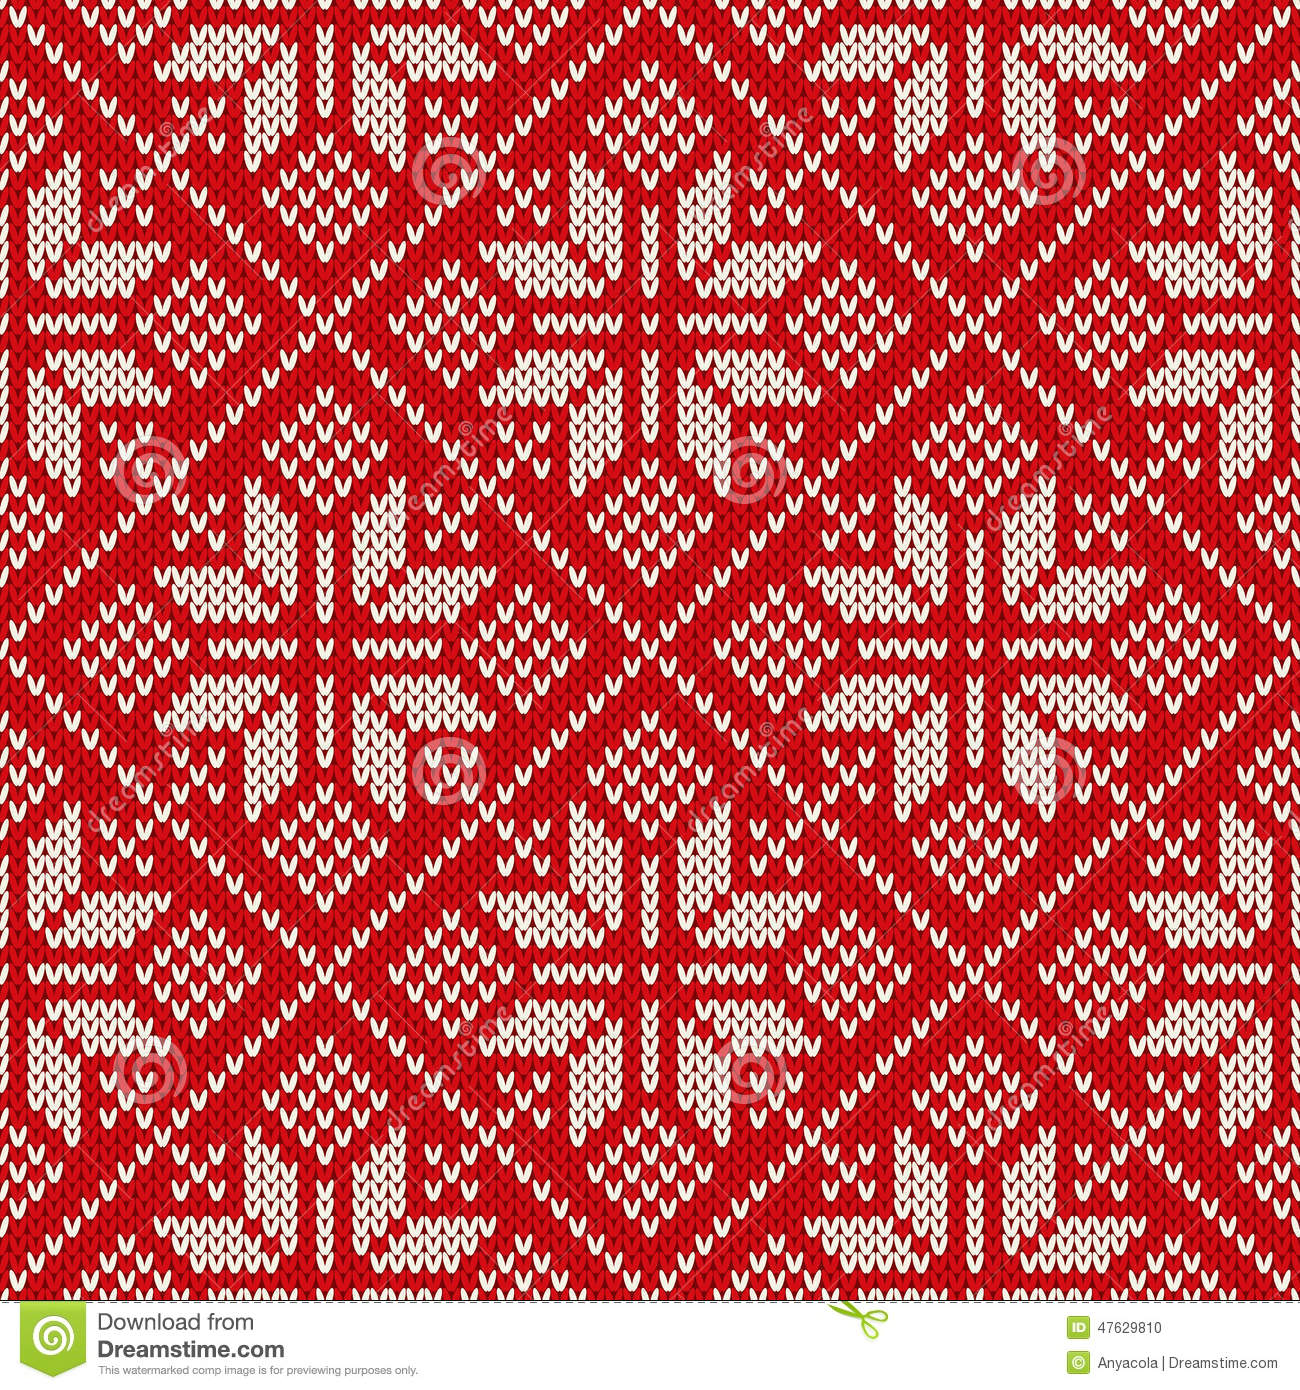 Christmas Sweater Design On The Wool Knitted Texture. Seamless P Stock Vector...